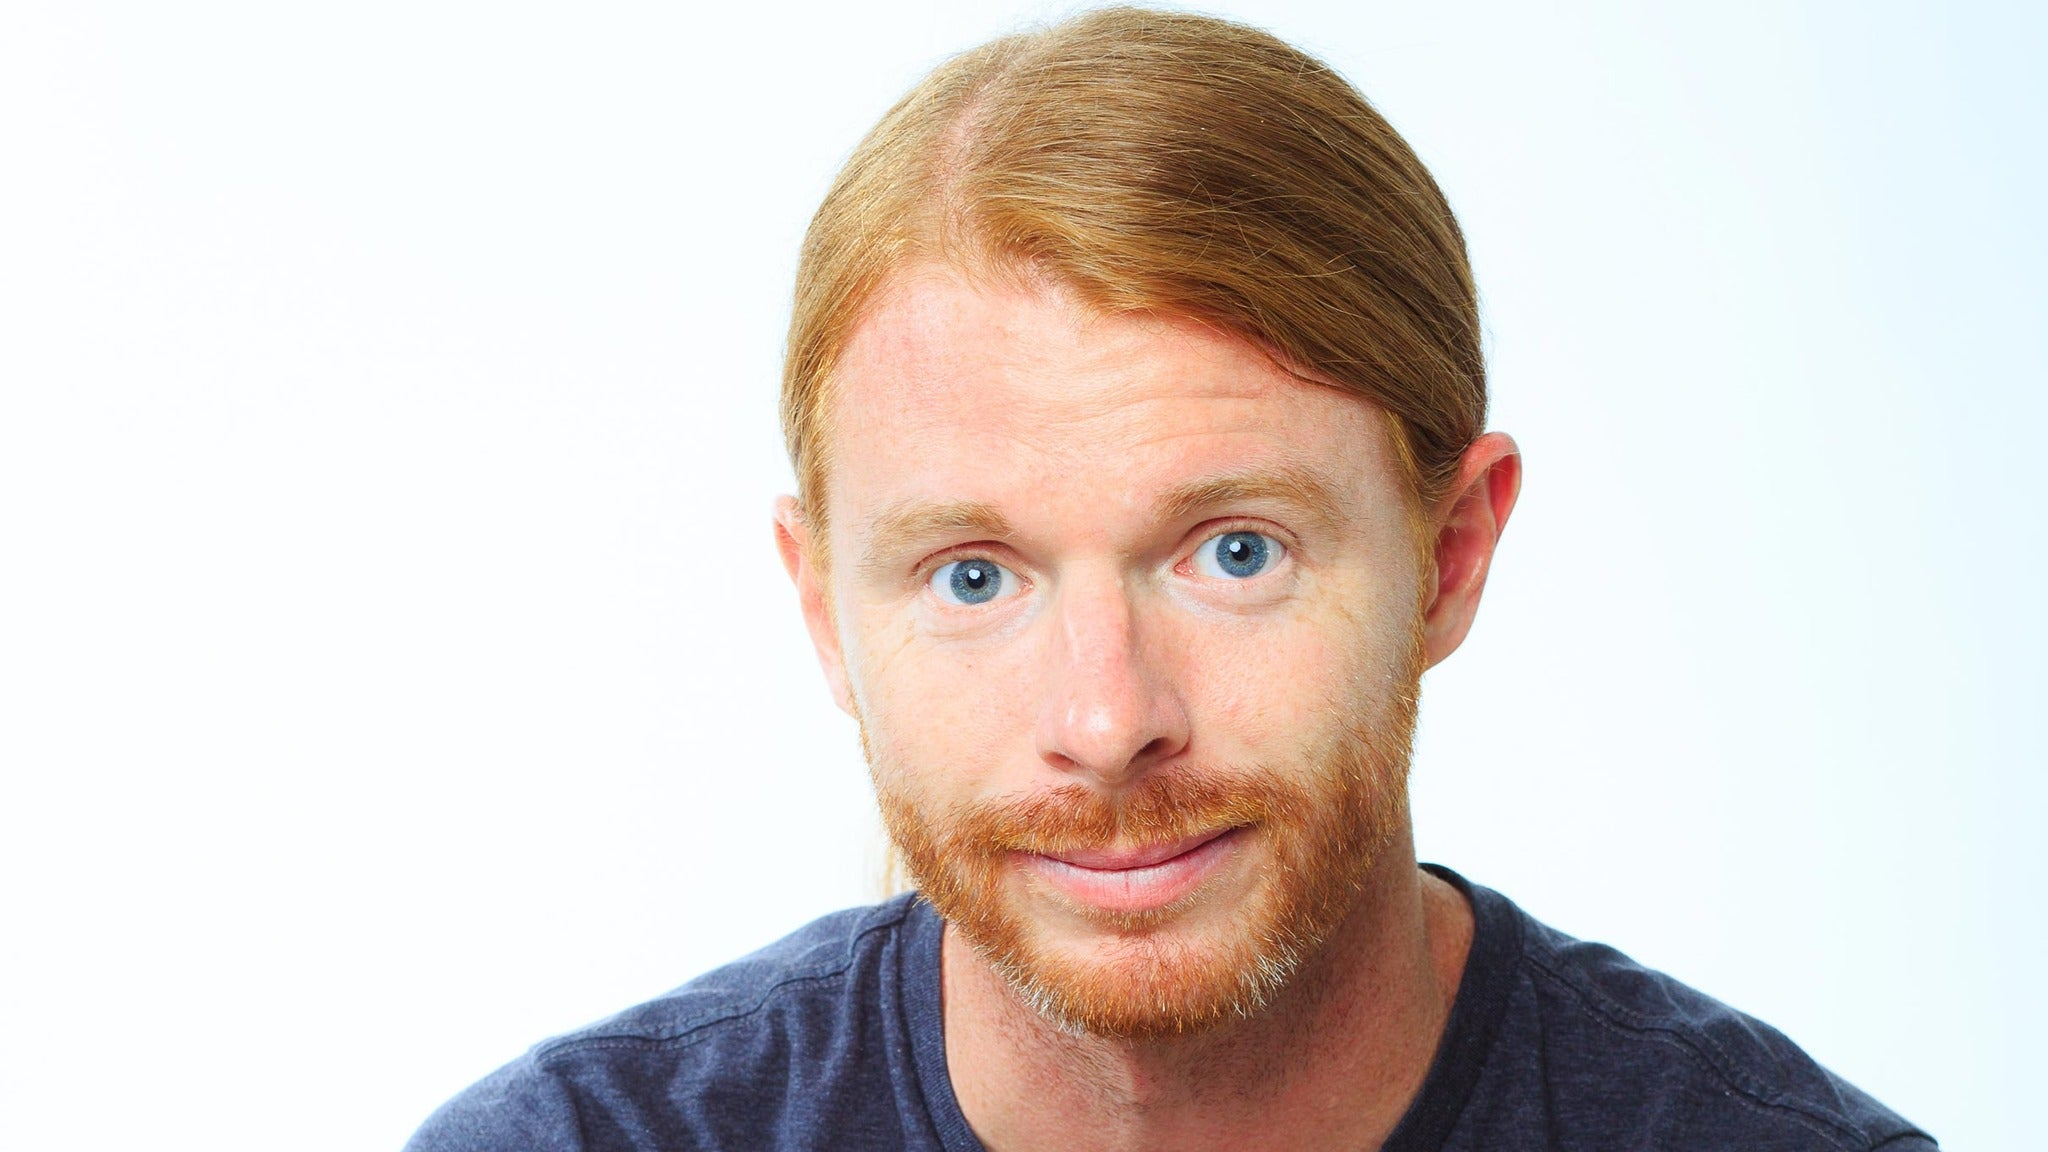 JP Sears at Punch Line Comedy Club - Sacramento